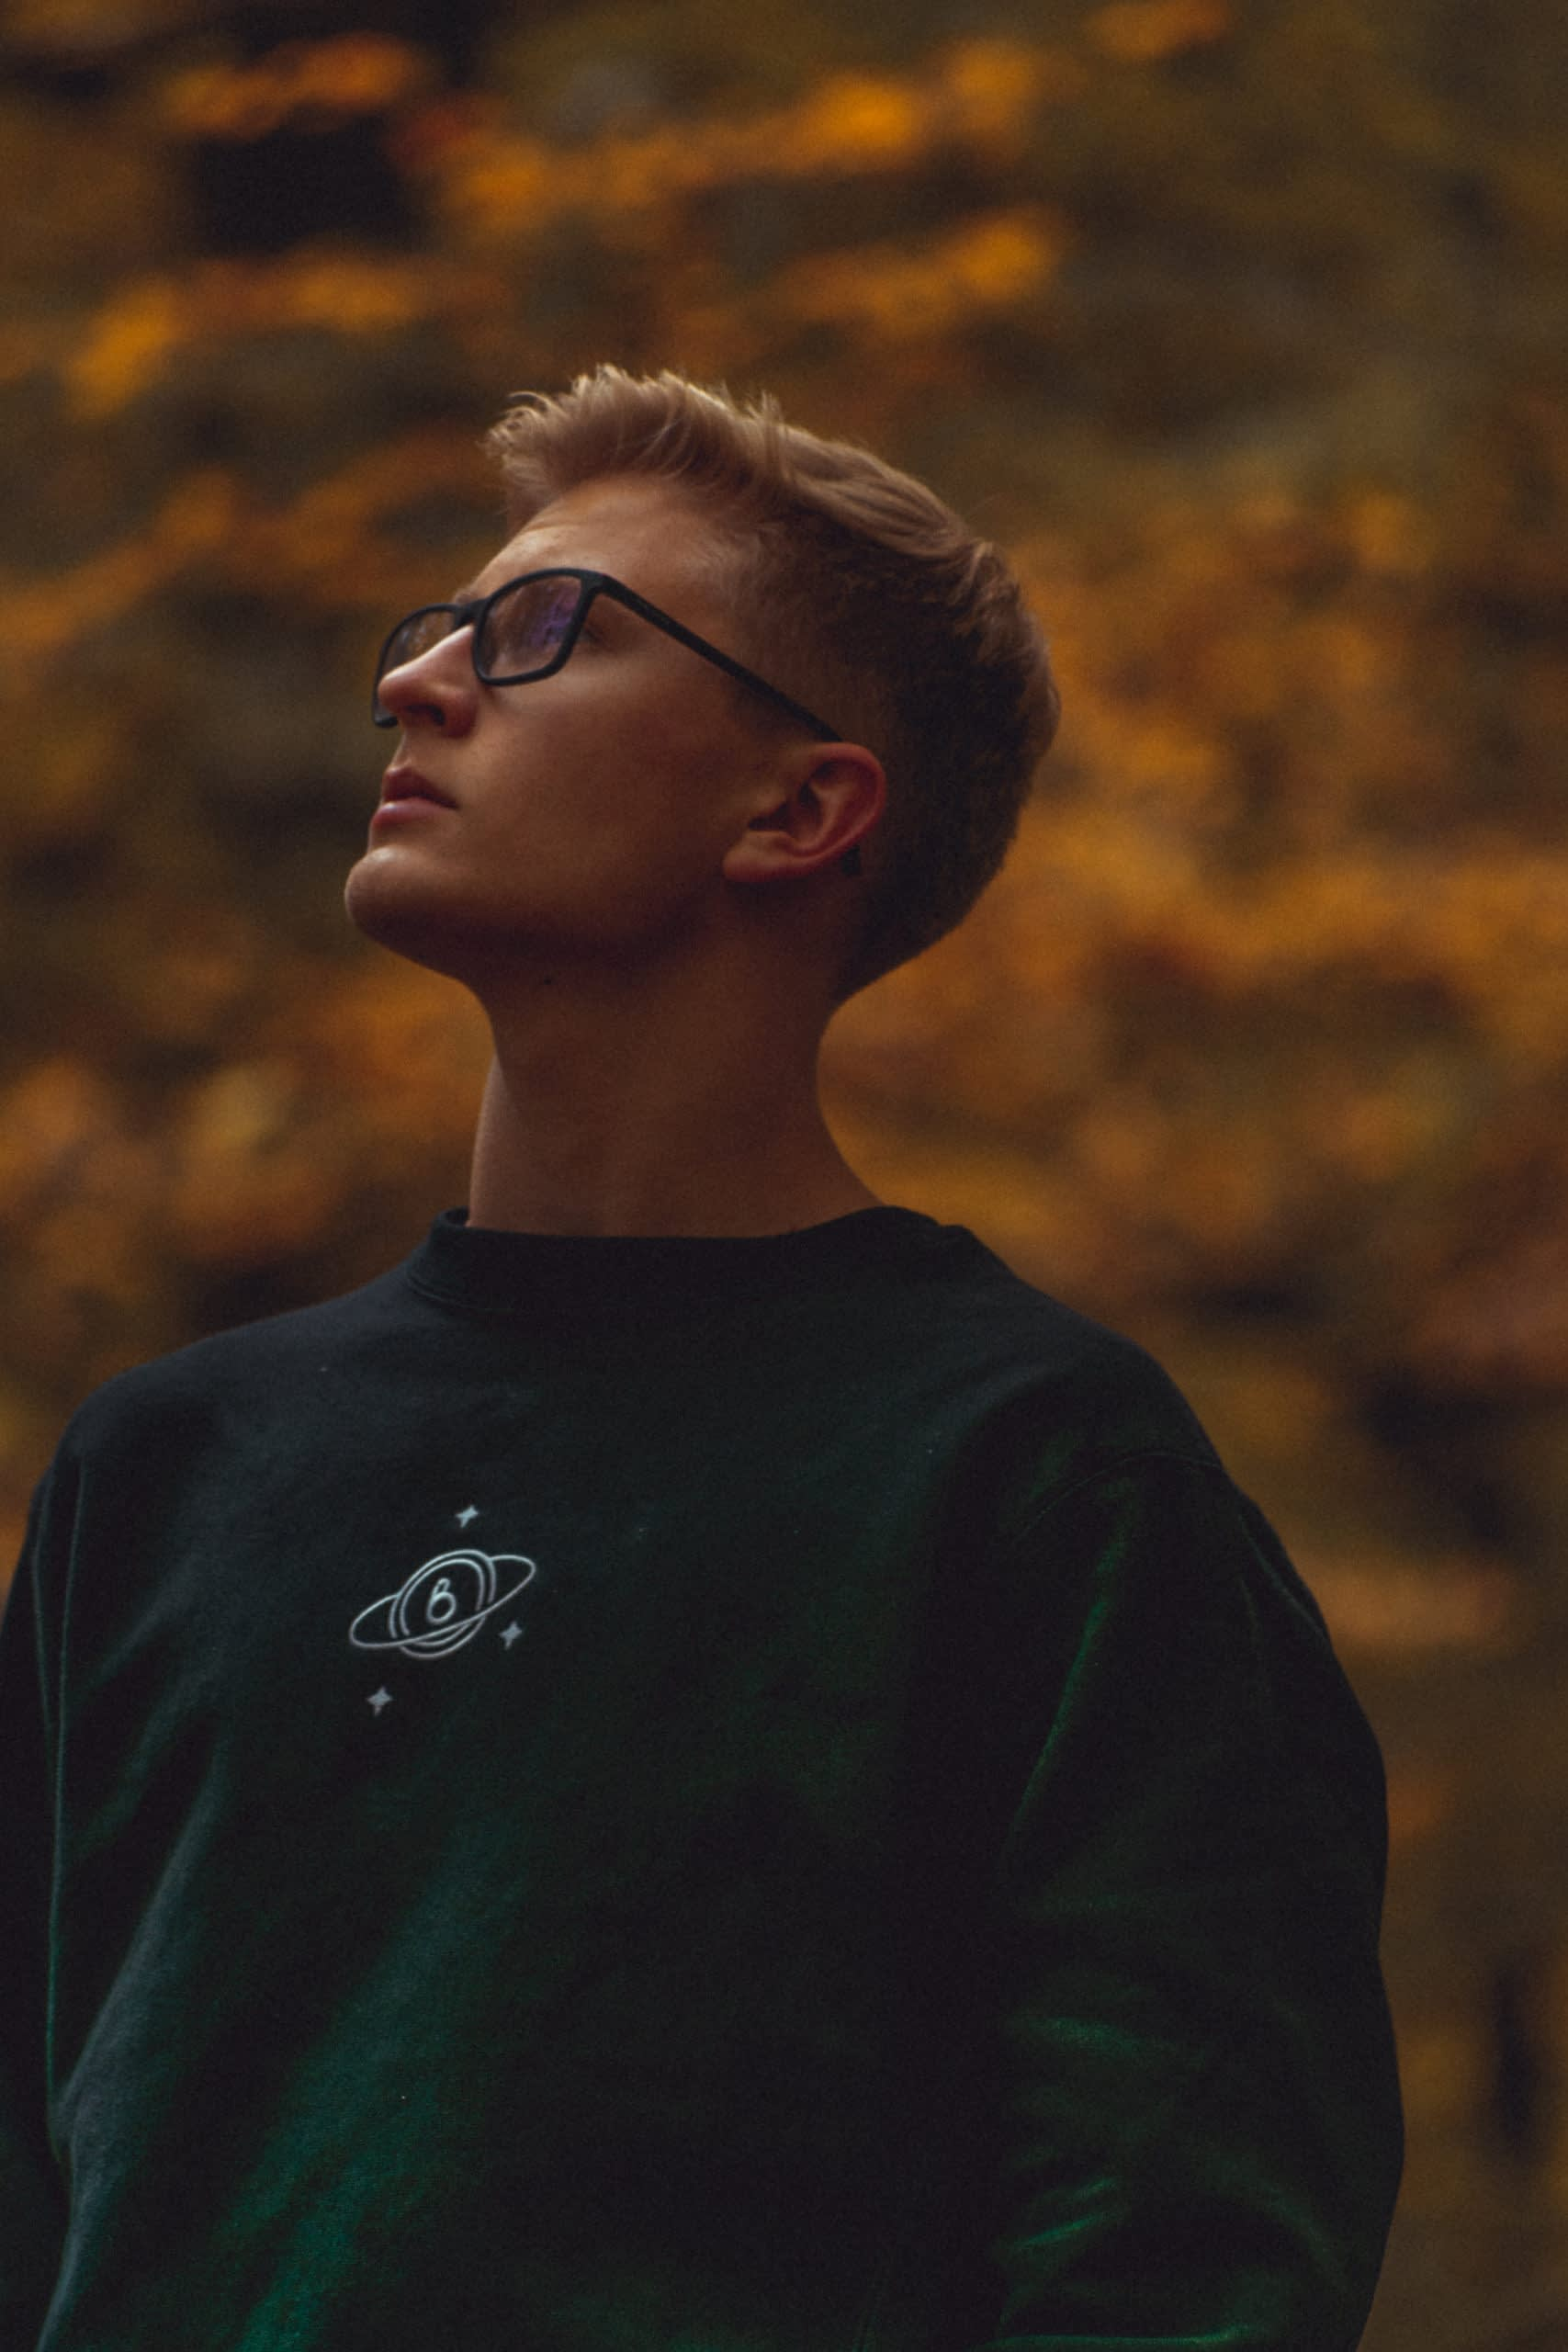 This is a self-portrait of the Dream. Pullover. I decided to leave the green haze on the sweatshirt because it gives the feeling of a dreamy or universe haze which suits the embroidered graphic.